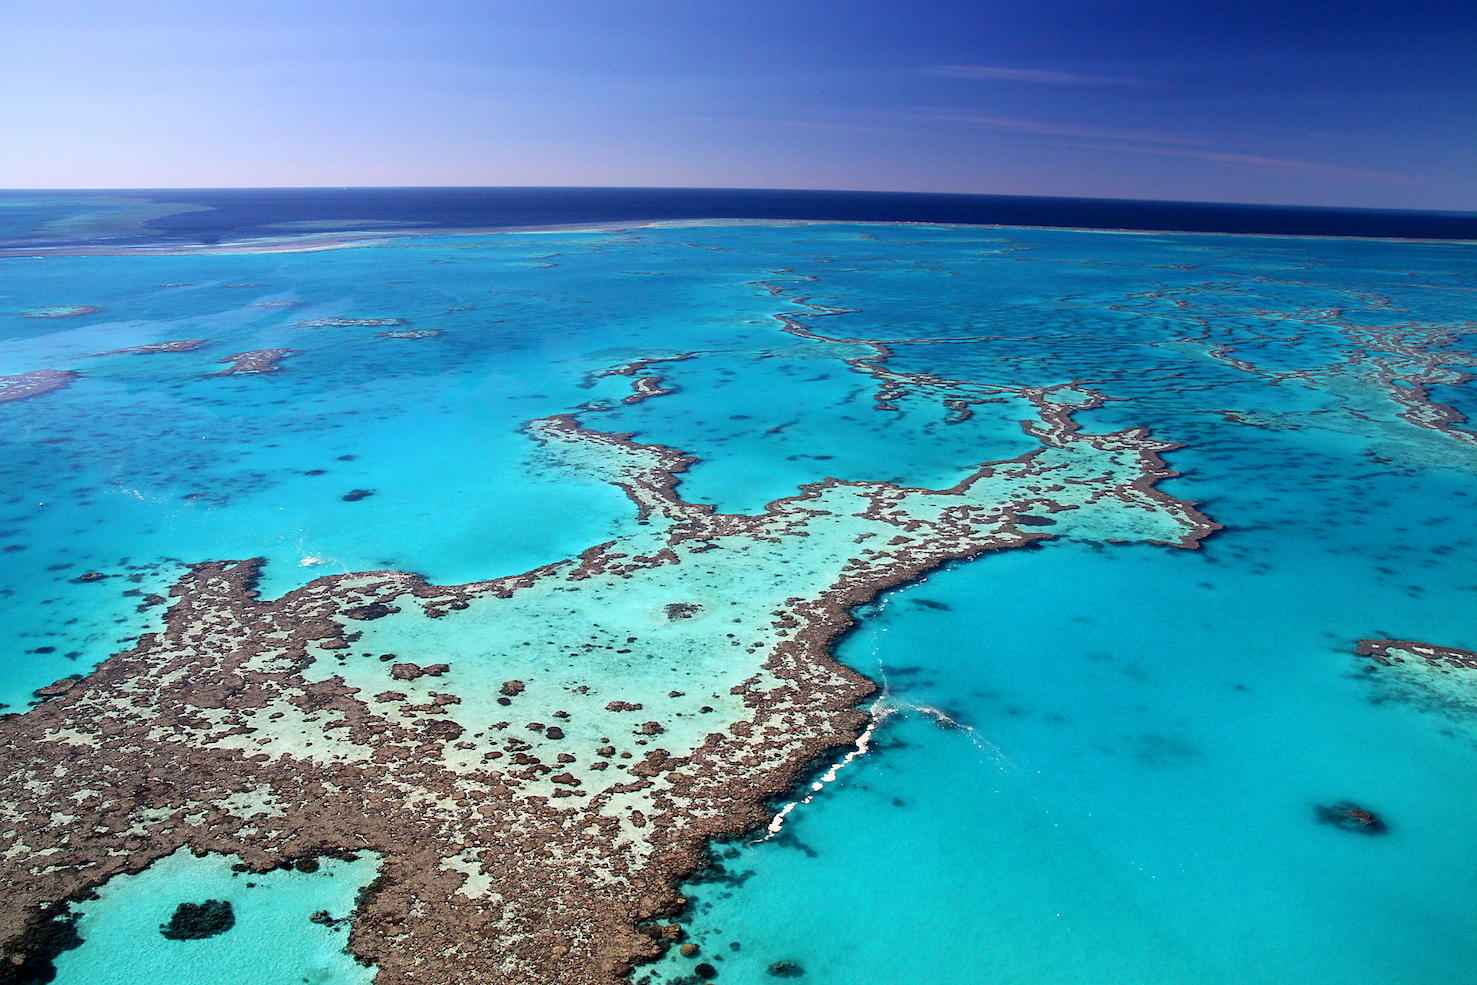 Researchers found that the Great Barrier Reef has suffered 5 death events driven by sea-level changes, and in response to these changes, the reef migrated across the ocean floor.